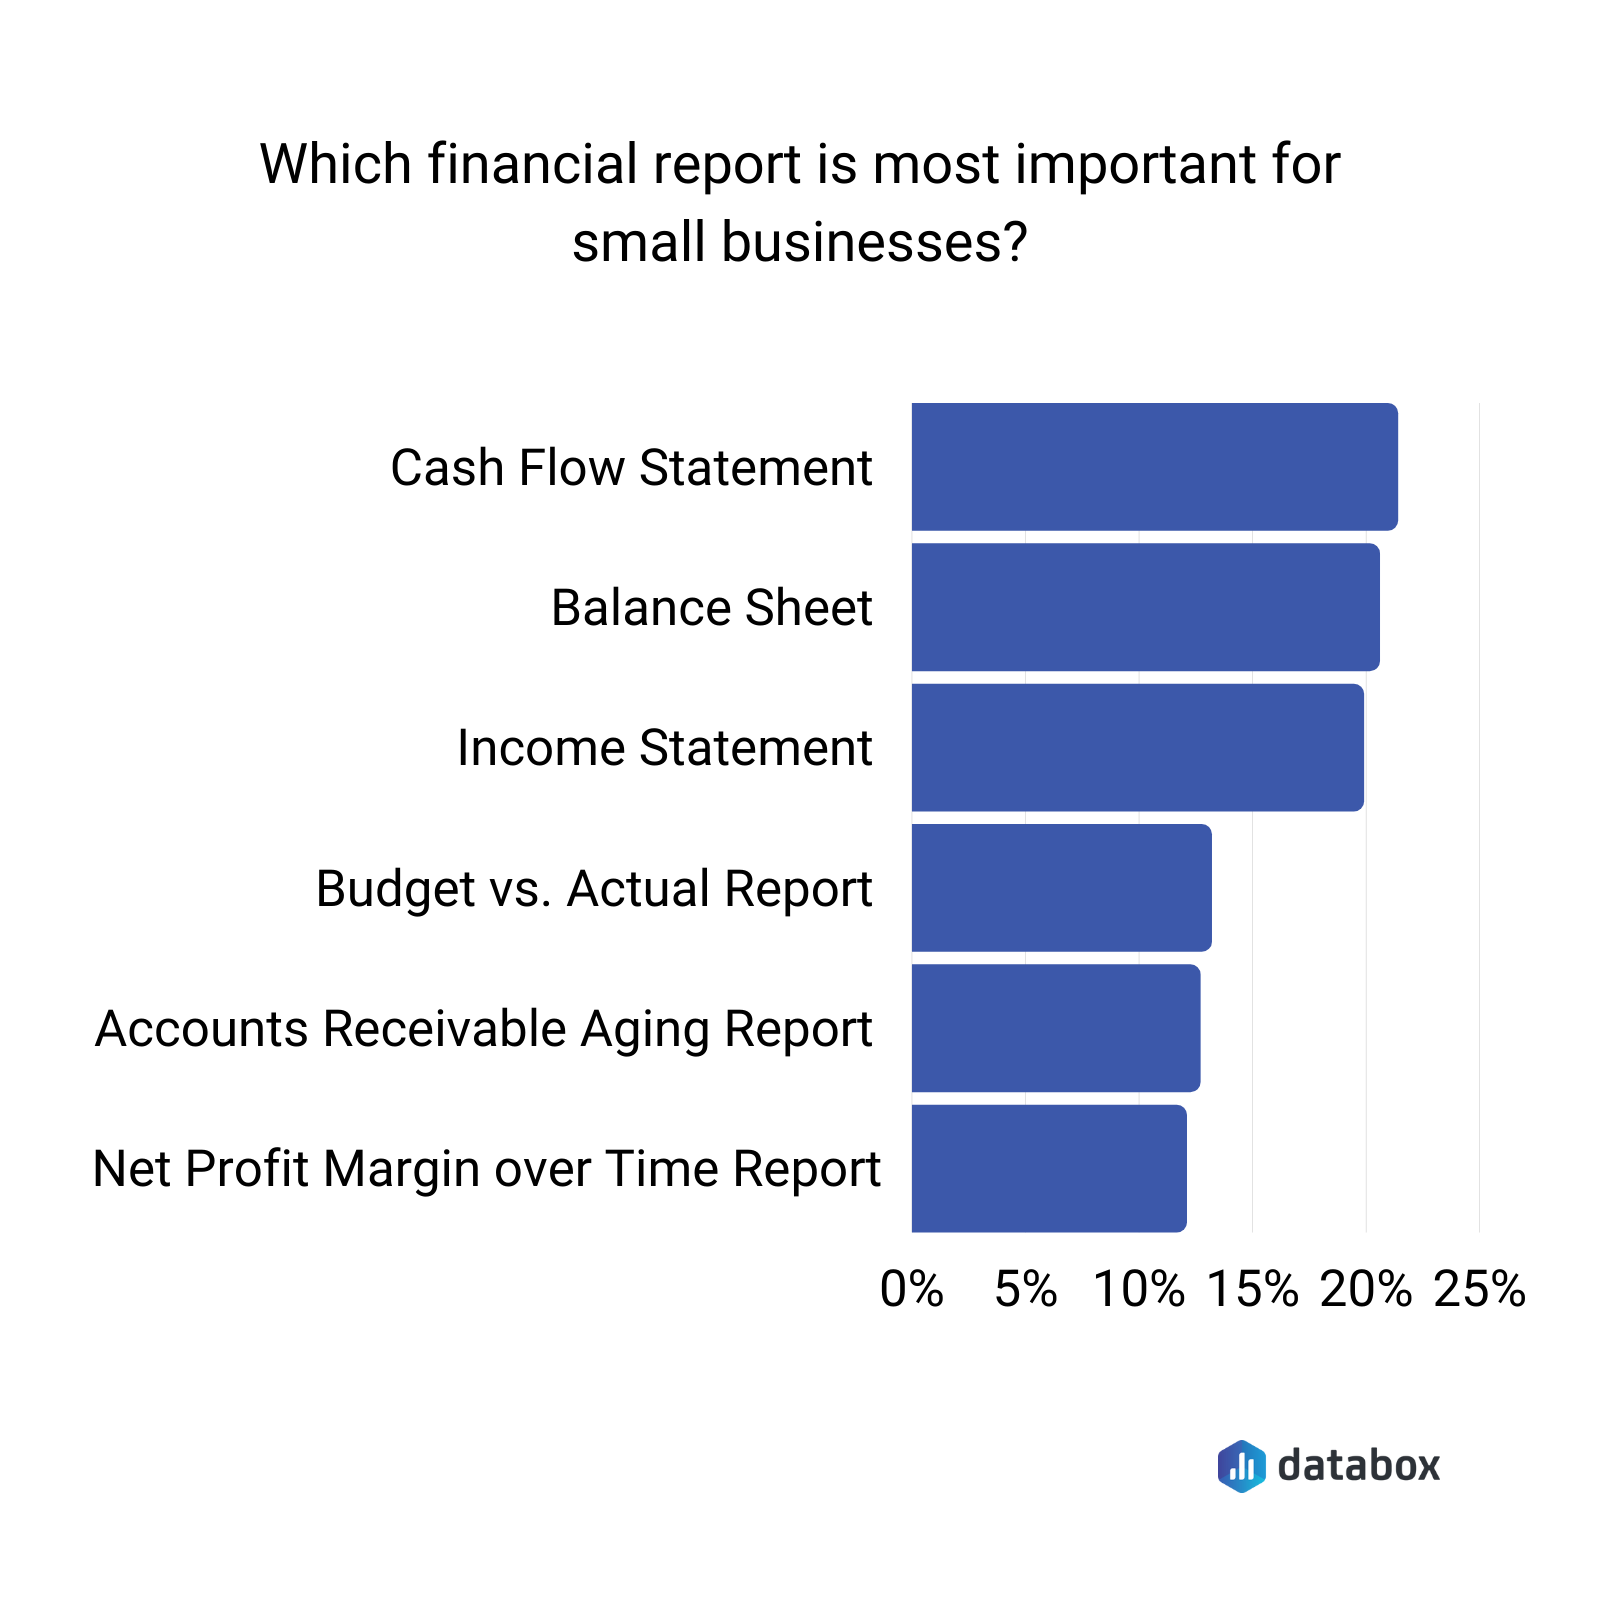 Most important financial reports for small businesses